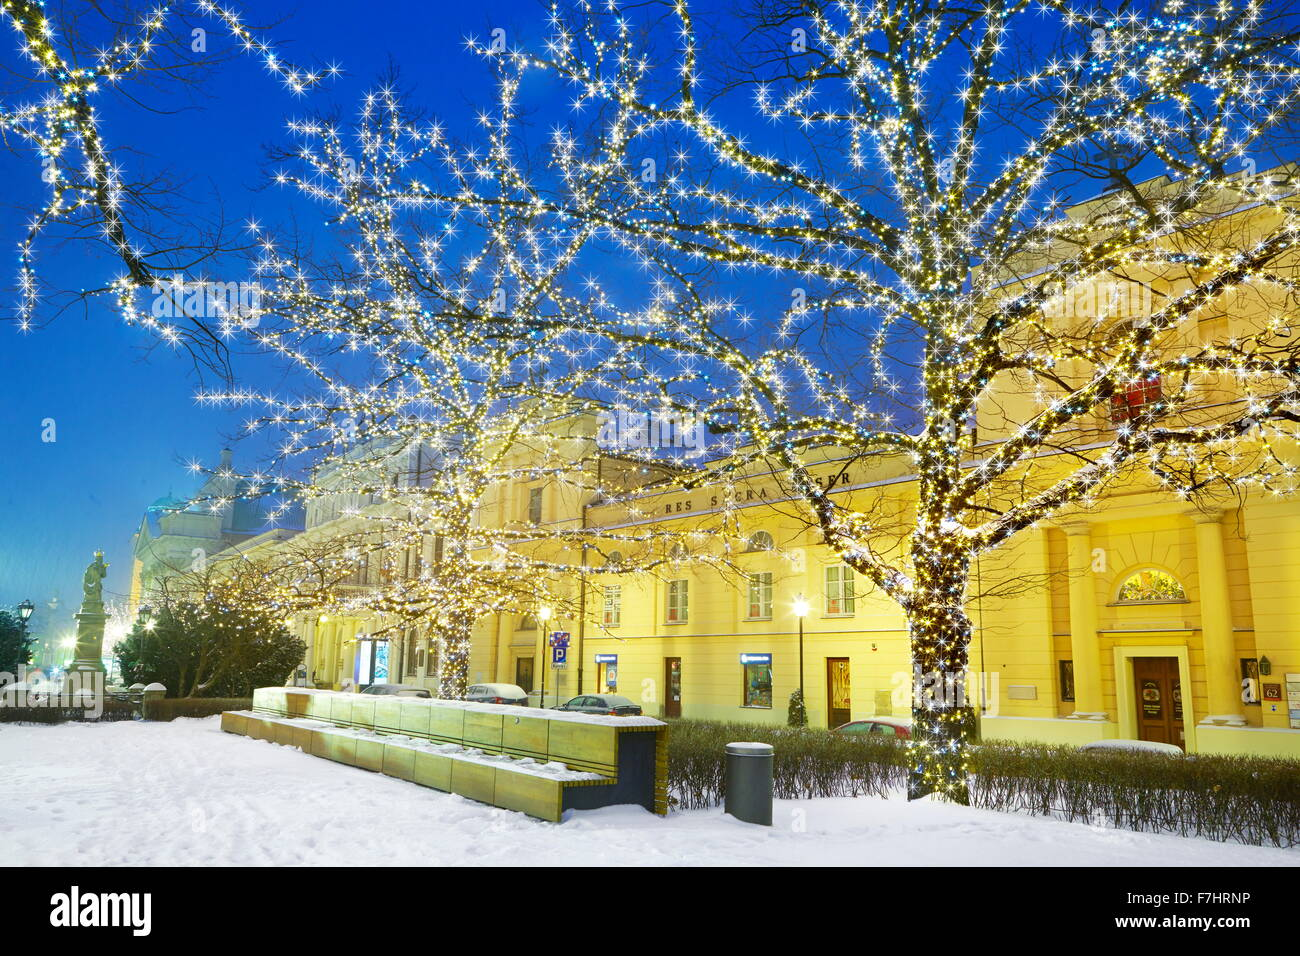 Décoration de Noël de plein air en hiver, Varsovie, Pologne Photo Stock